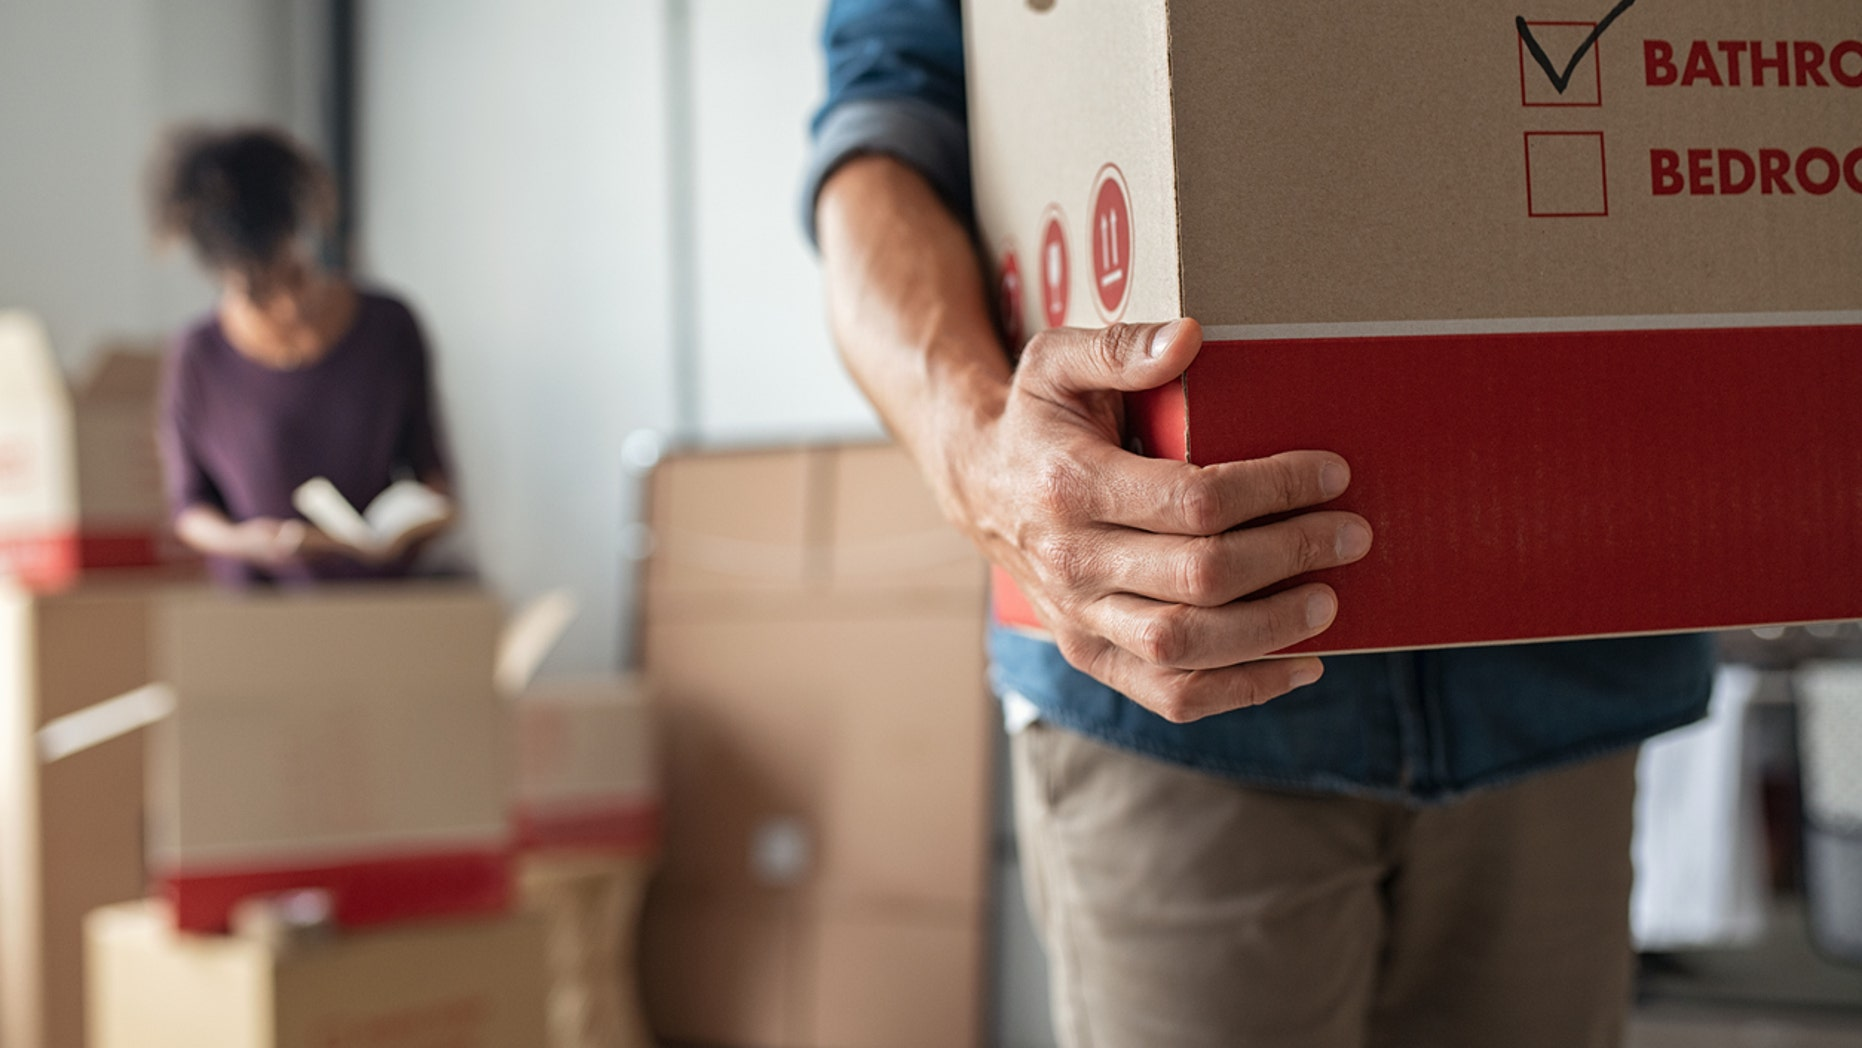 Moving is the most stressful event, followed by a divorce and then marriage, a survey claims.